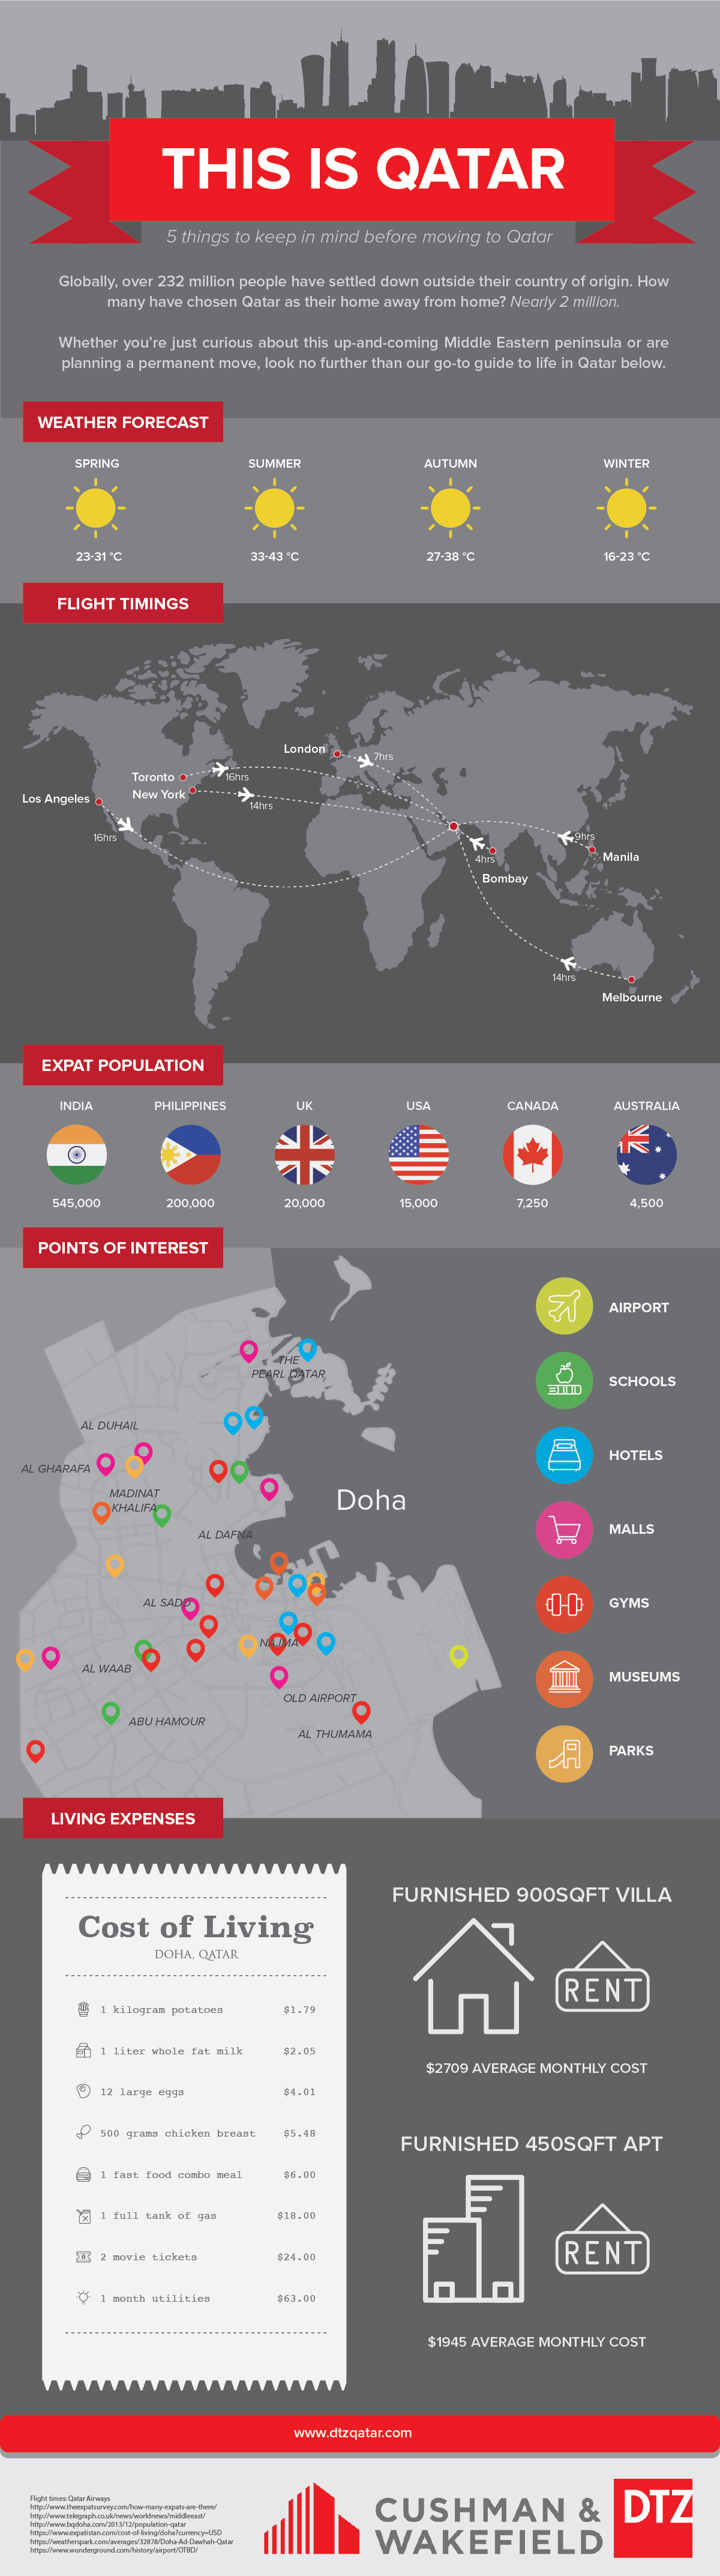 This Is Qatar Infographic Qatar Travel Qatar Travel Travel